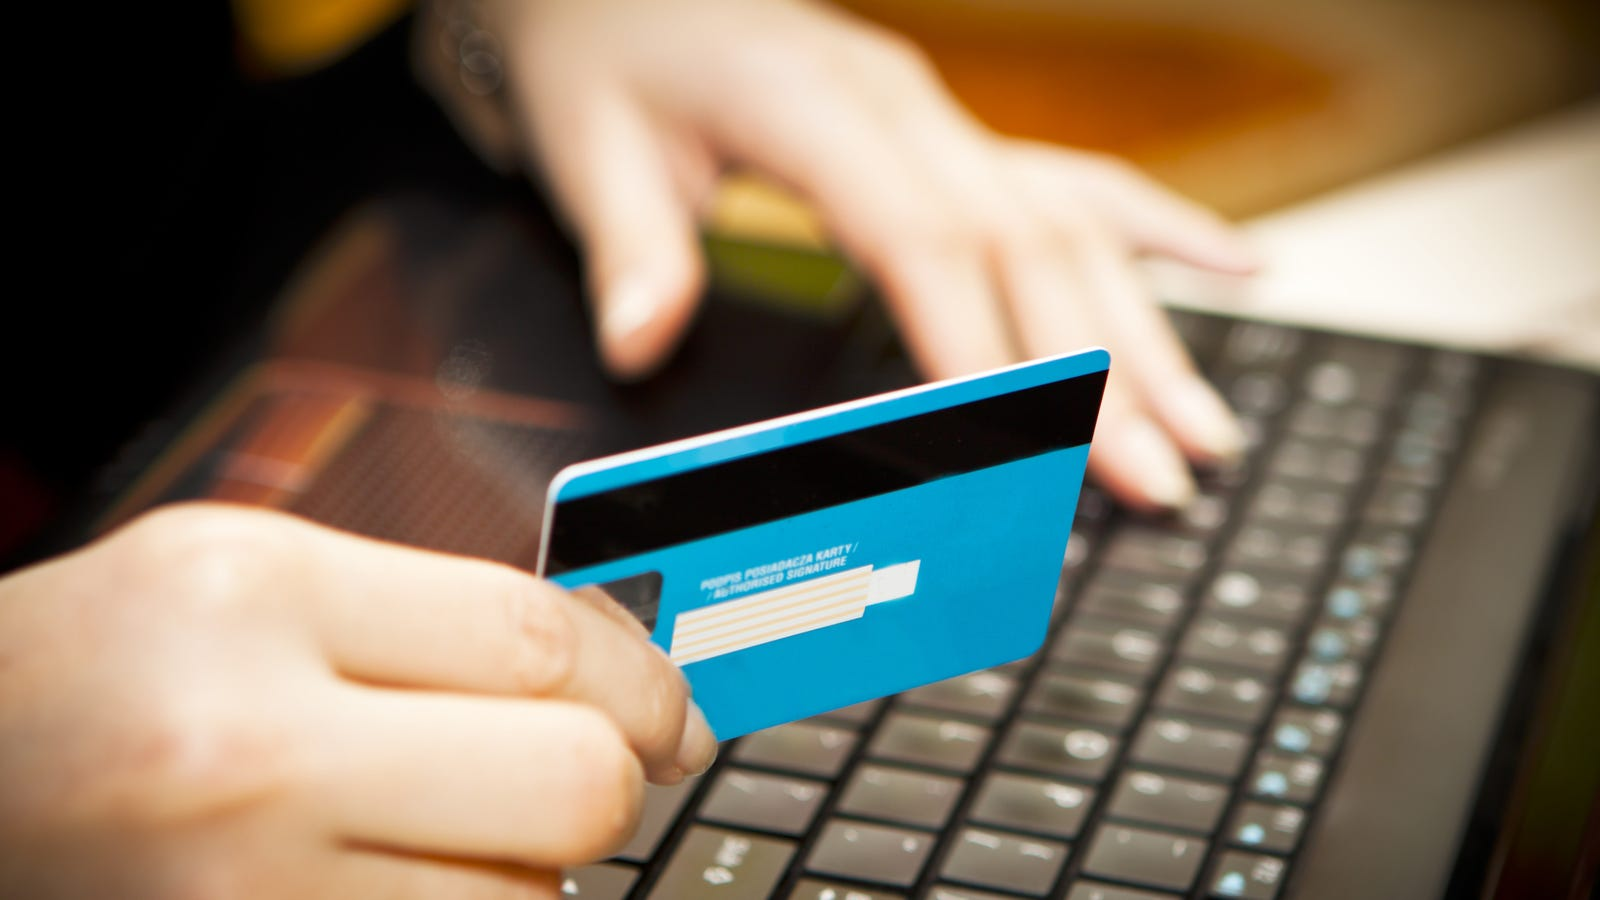 Watch Out for Retailers With Sneaky Monthly Membership Fees